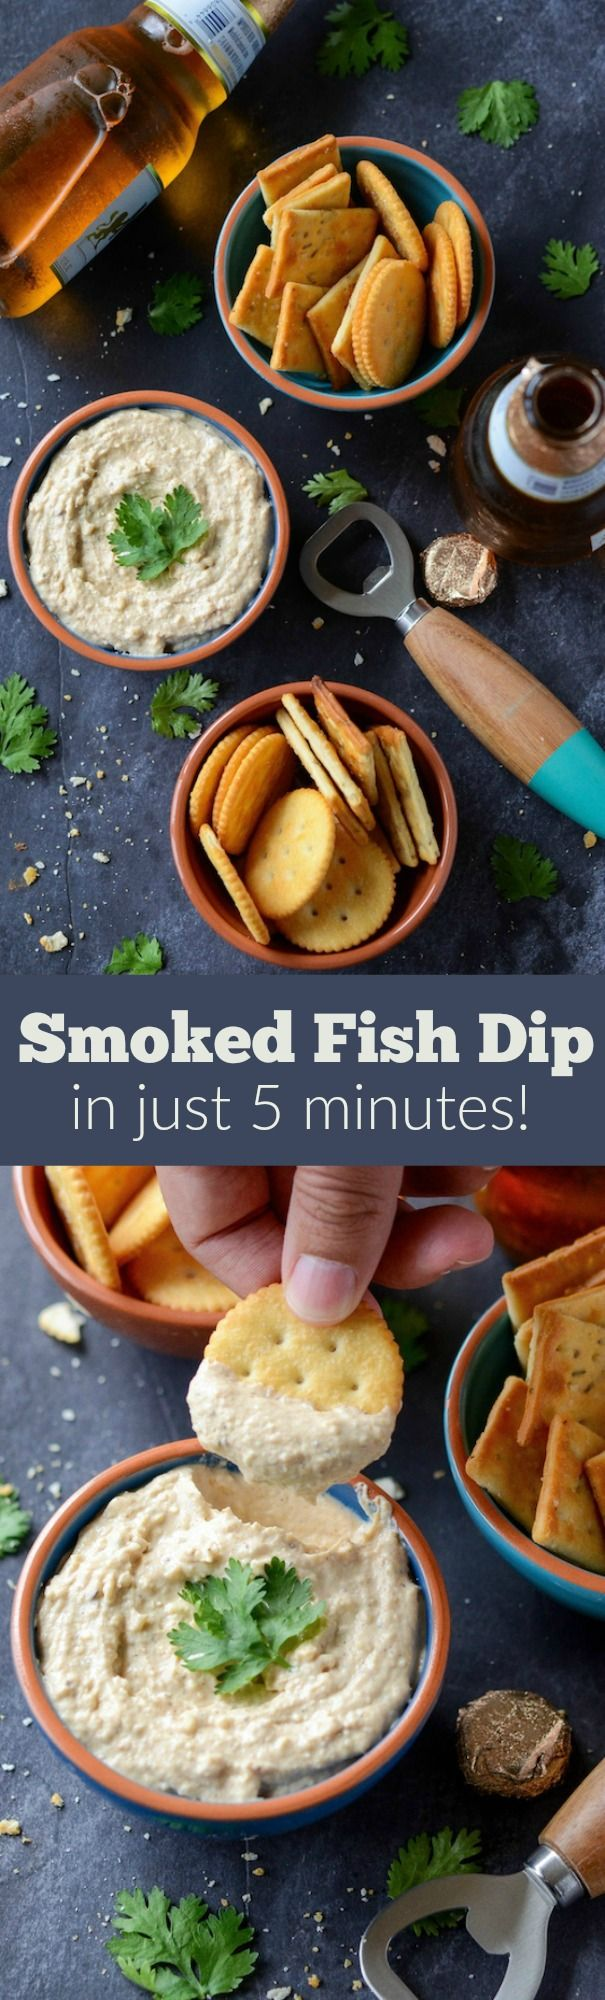 Smoked fish dip recipe smoked fish the o 39 jays and dips for Smoked fish spread